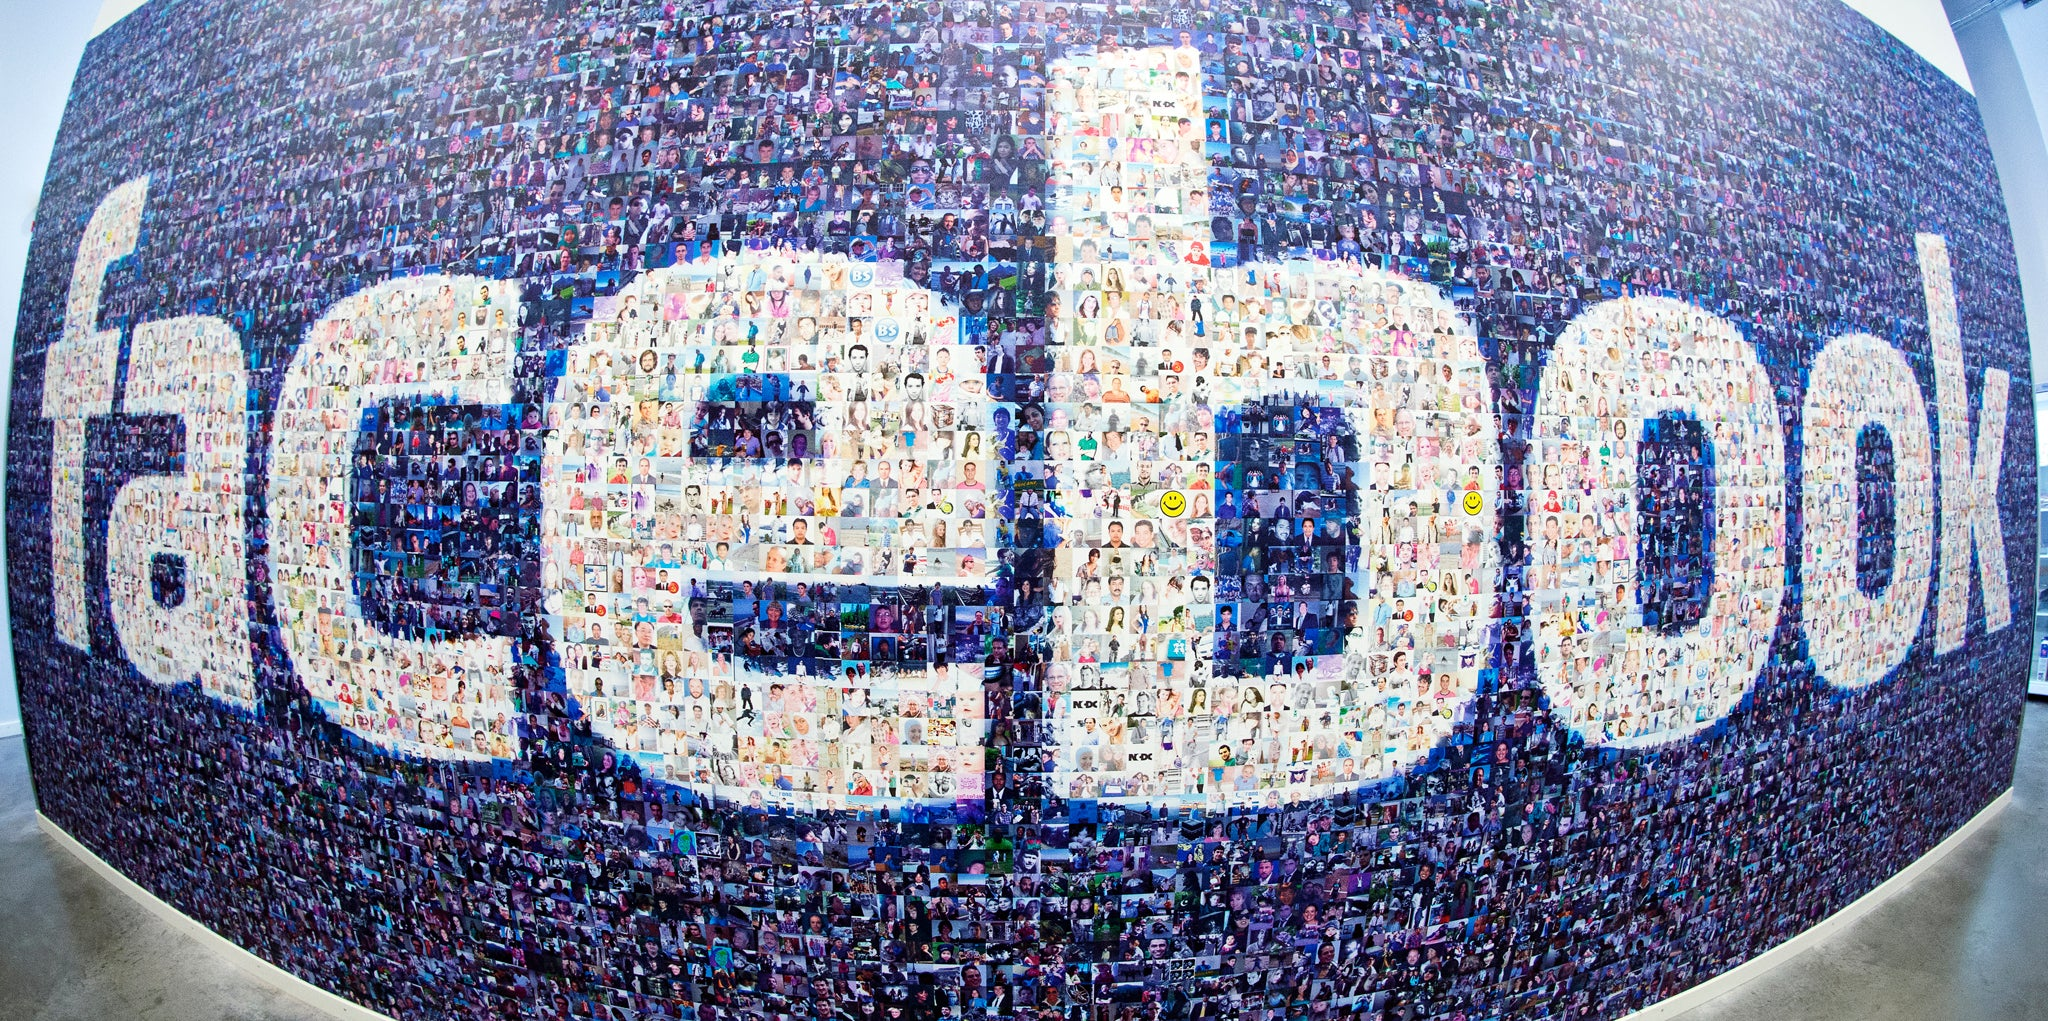 Facebook announces major changes to real name policy the facebook announces major changes to real name policy the independent buycottarizona